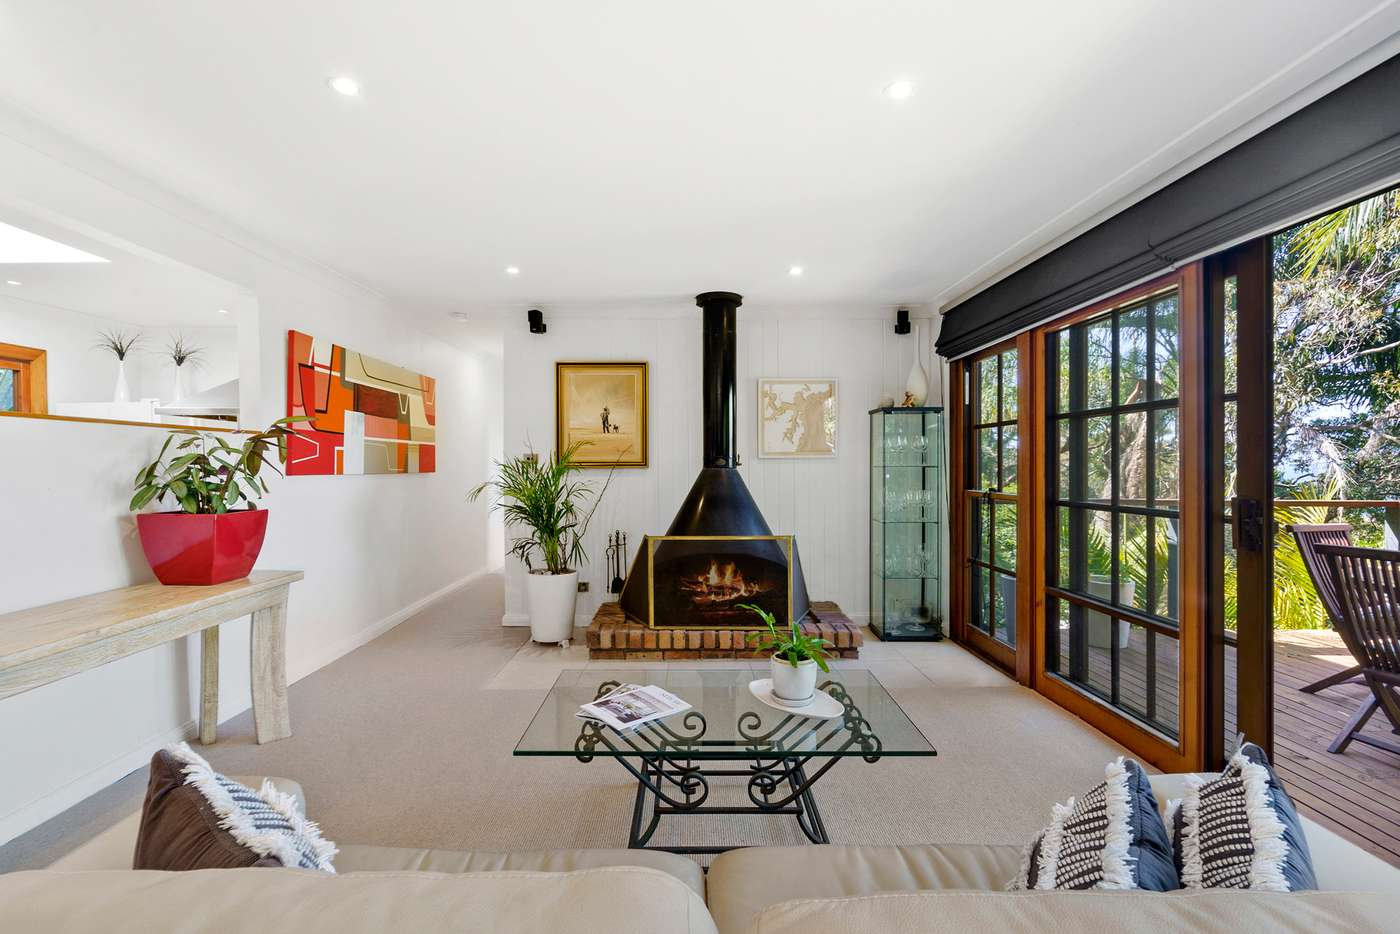 Fifth view of Homely house listing, 27 Palmgrove Road, Avalon Beach NSW 2107